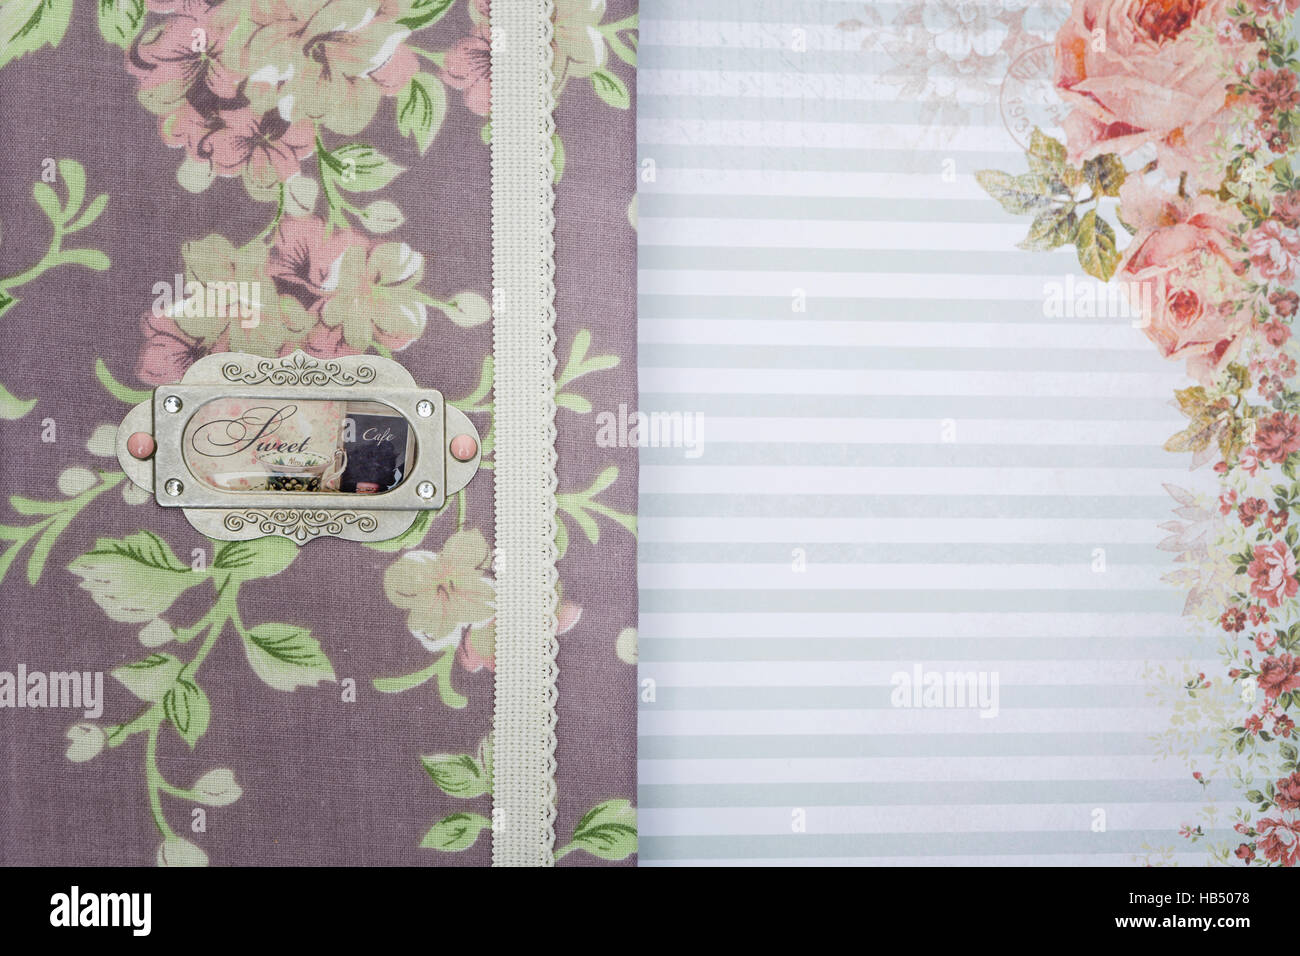 Scrapbooking holder for travel documents on floral paper - Stock Image